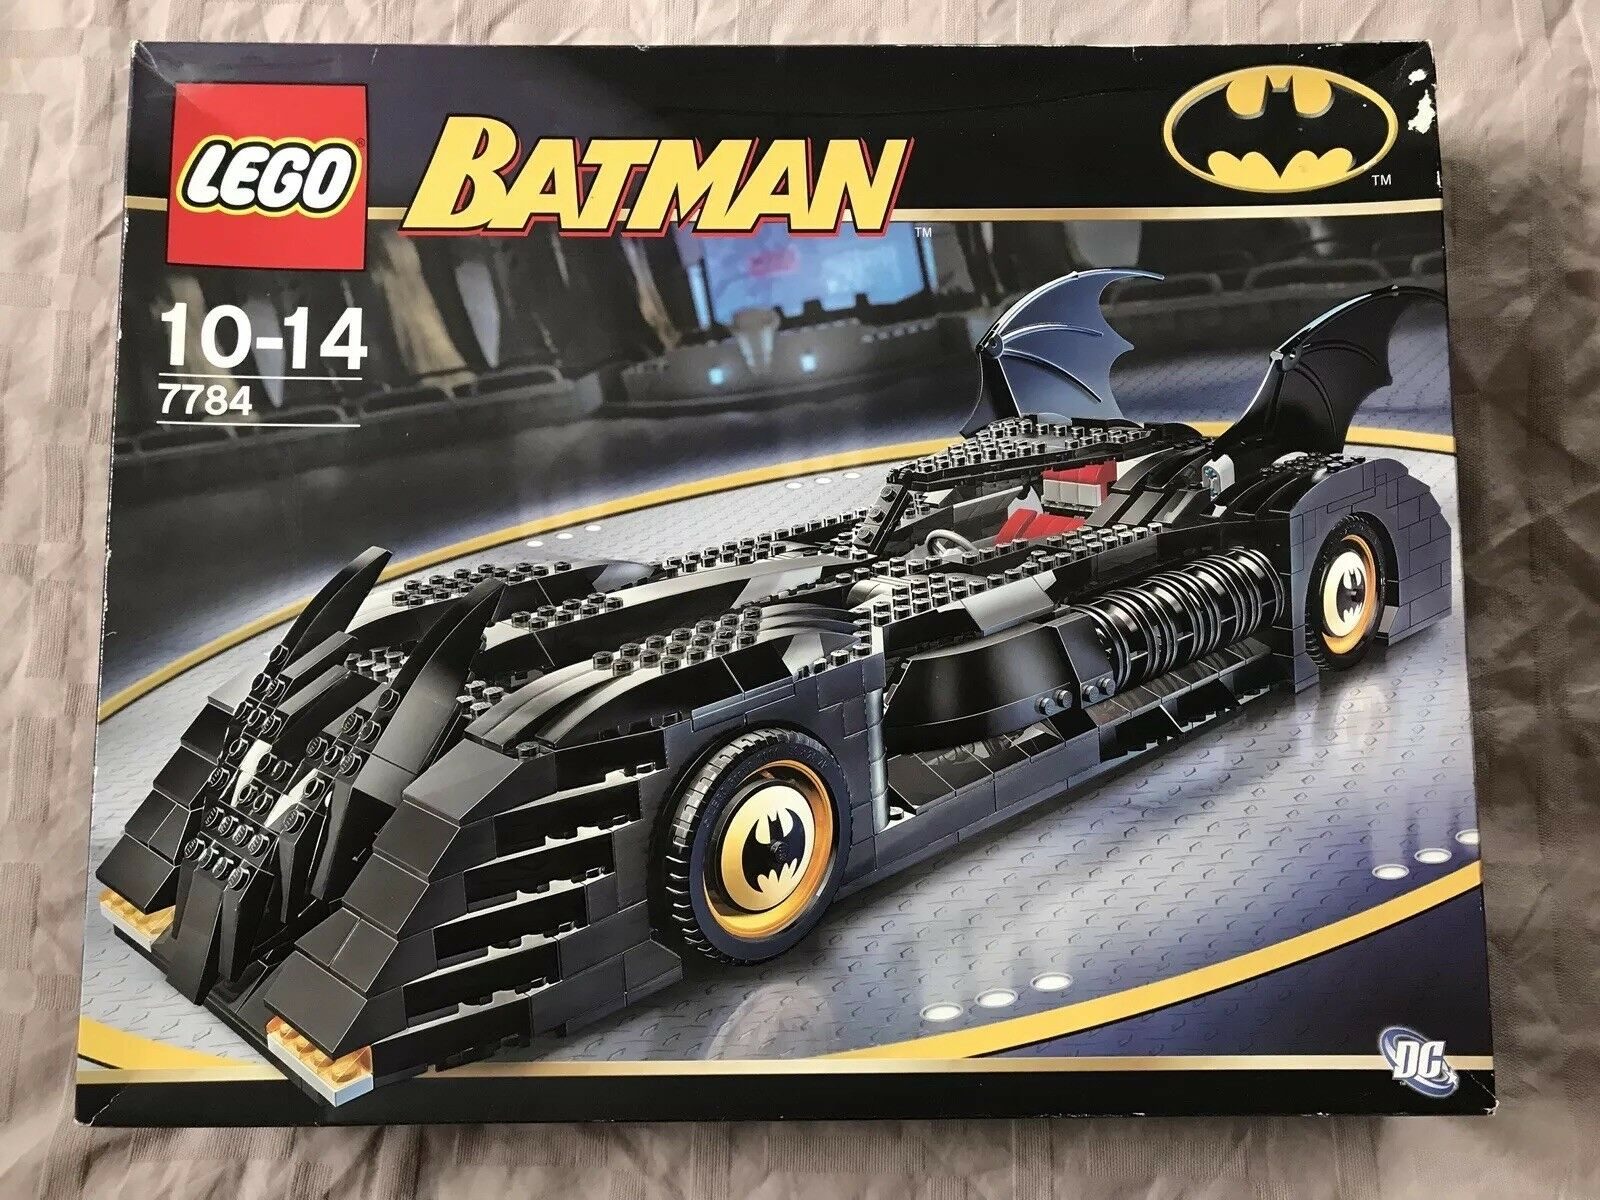 New, sealed LEGO Batman The Batmobile Ultimate Collectors' Edition (7784)